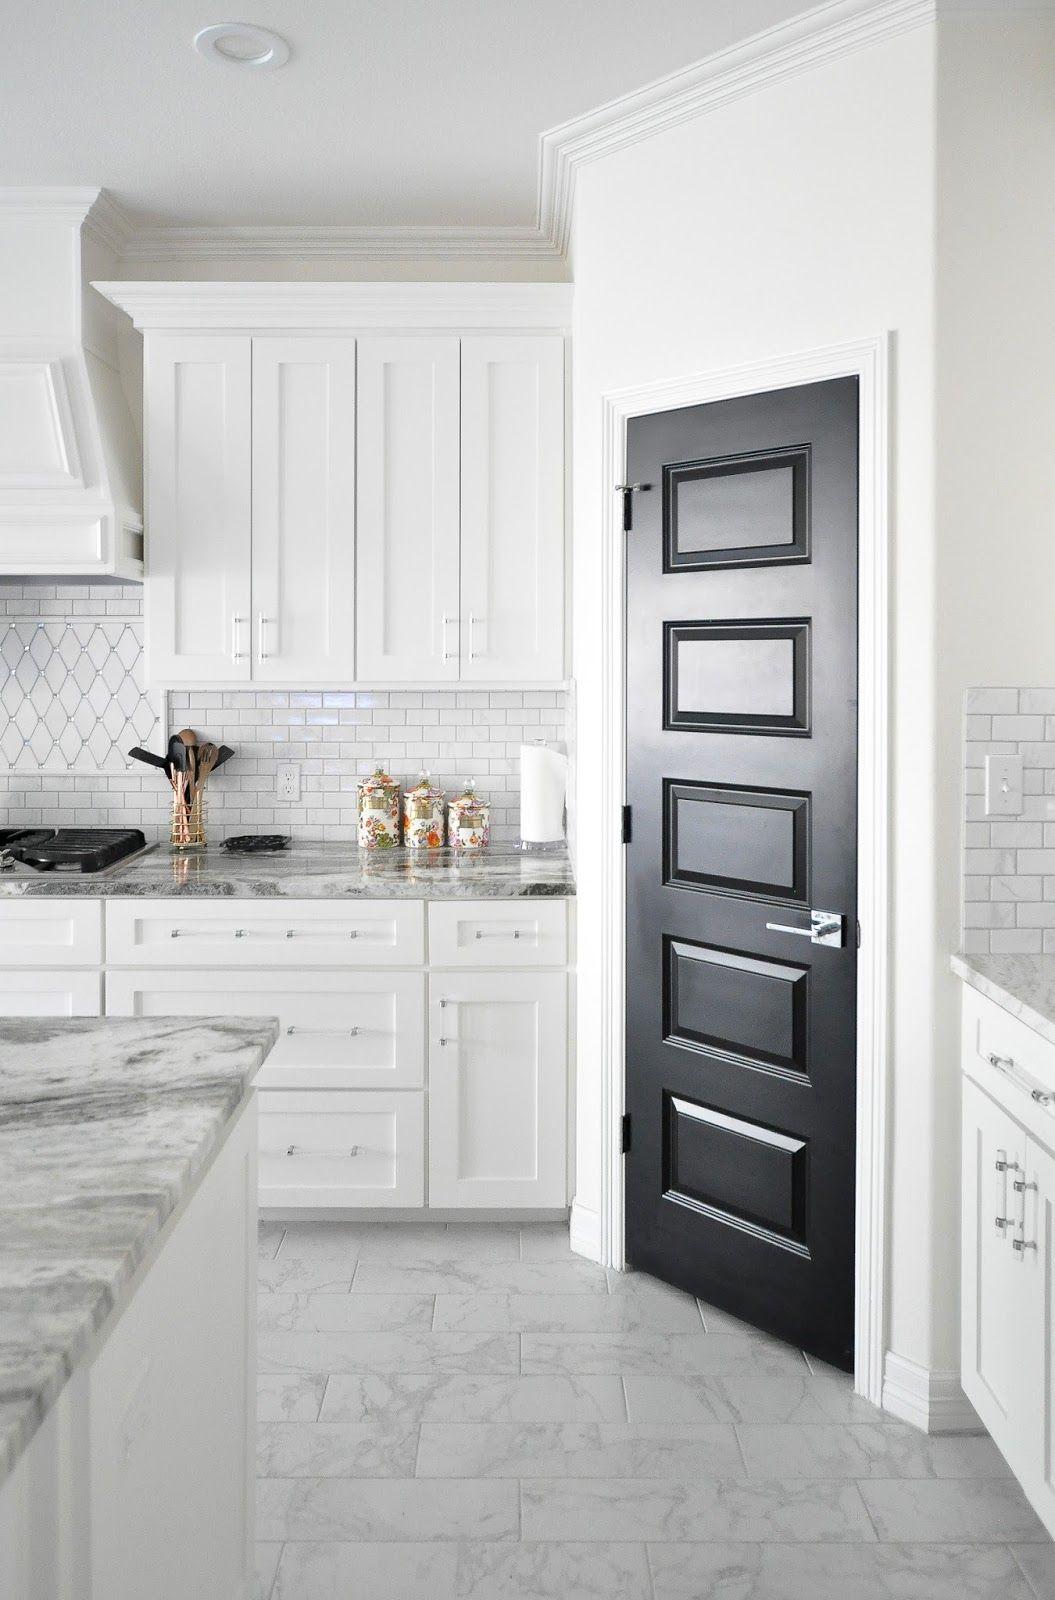 Living With Black Interior Doors 6 Month Update Monica Wants It White Shaker Kitchen Kitchen Remodel Inspiration Kitchen Remodel Small White kitchen cabinets with black doors